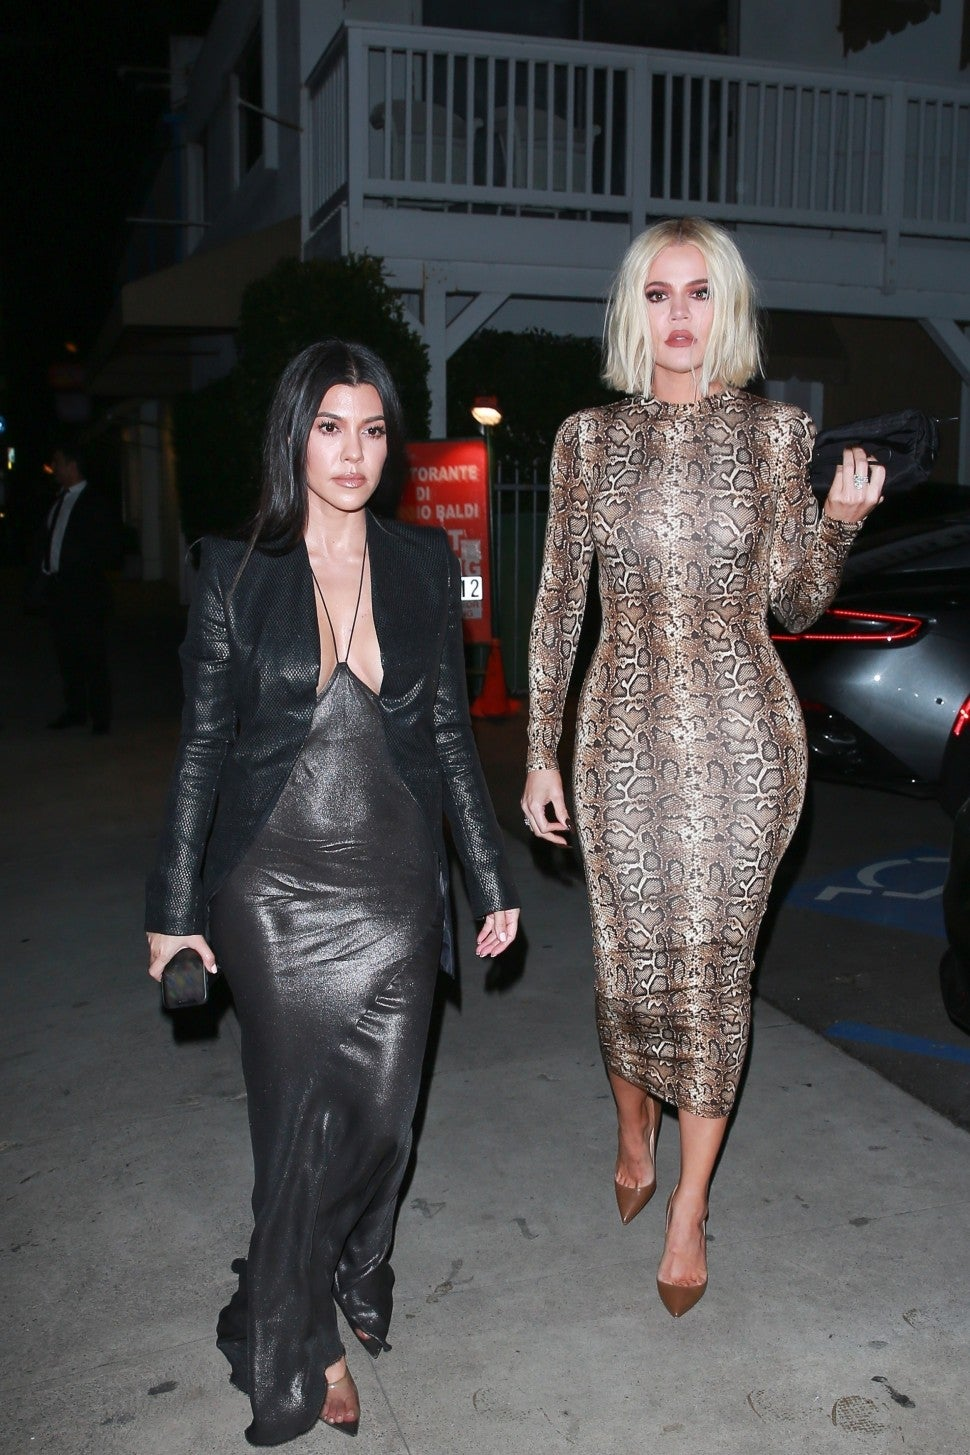 Kourtney Kardashian and Khloe Kardashian enjoy a night out